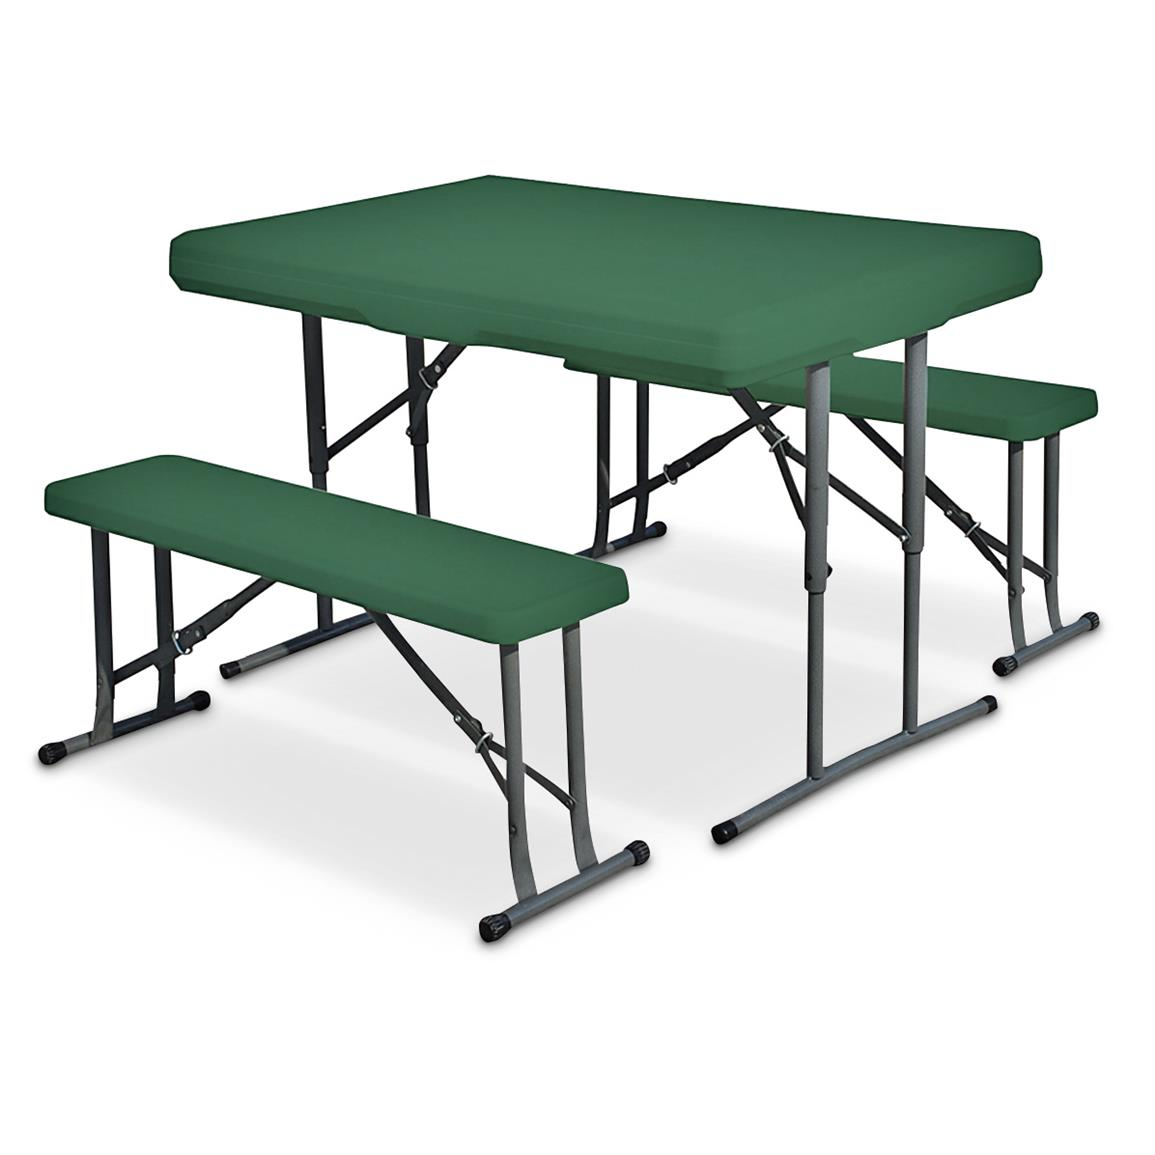 Stansport Folding Camp Table Amp Chairs 640303 Tables At